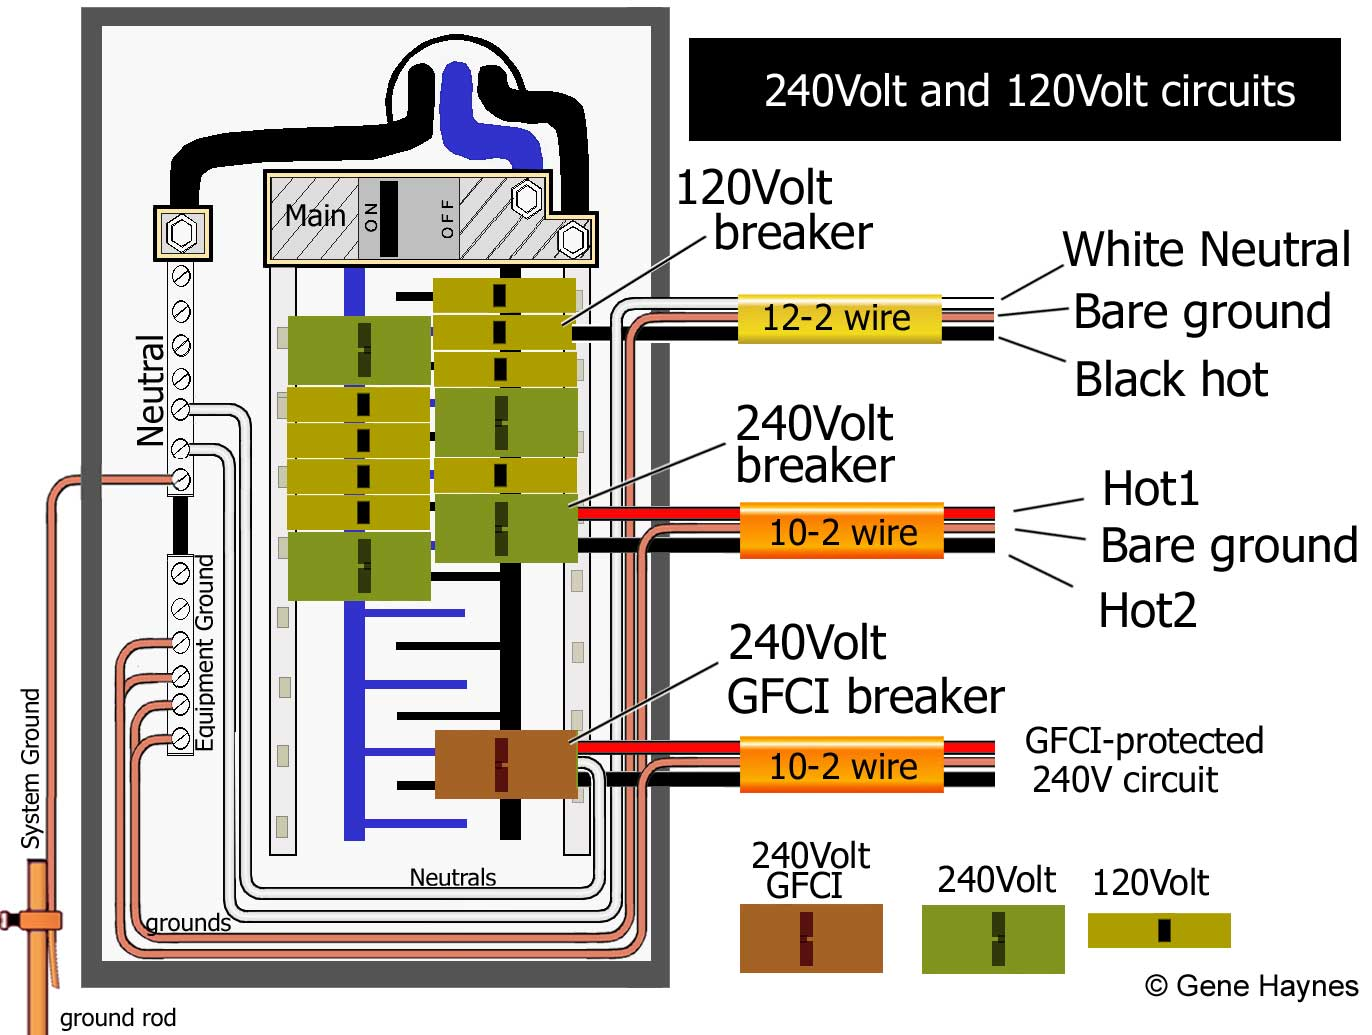 gfci circuit breaker wiring wiring diagram de 220 Circuit Breaker Wiring Diagram how to wire gfci afci circuit breaker circuit breaker wiring diagram gfci circuit breaker wiring